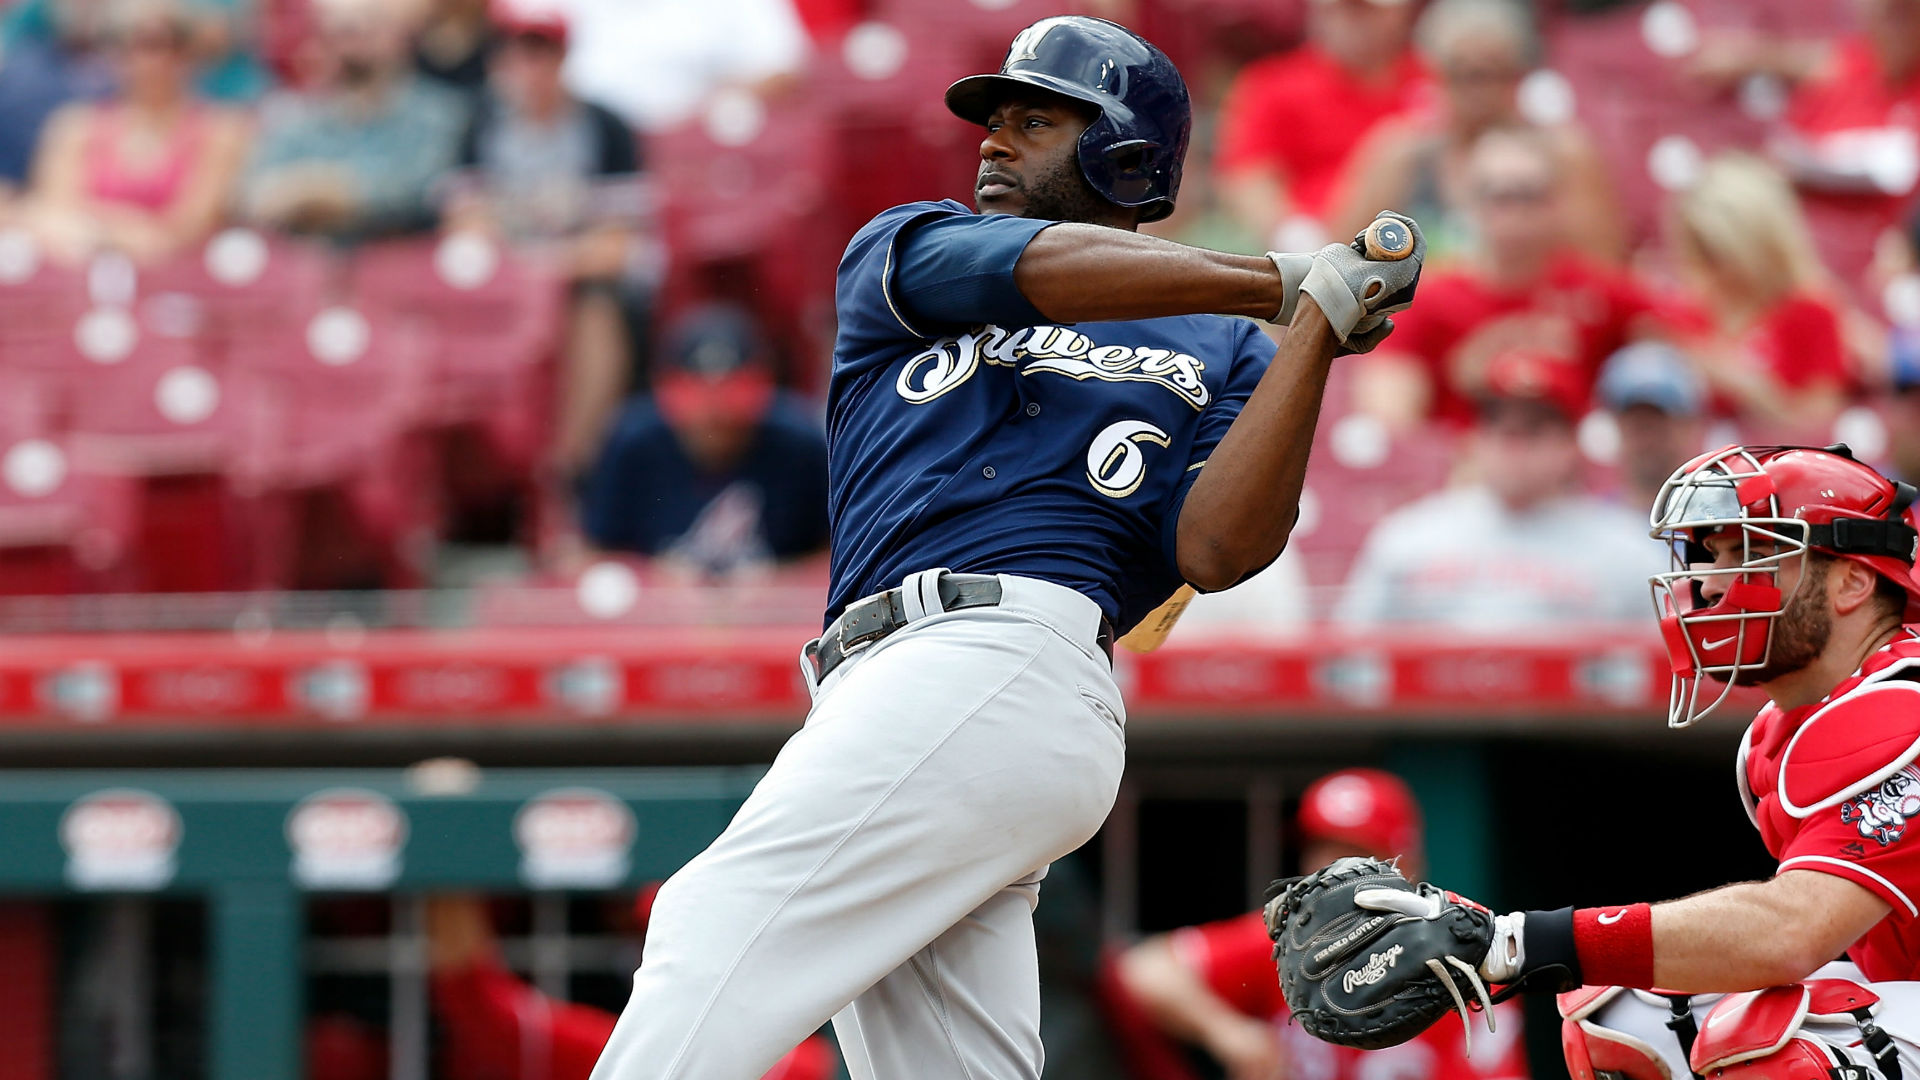 Lorenzo Cain injury update: Brewers outfielder leaves game after HBP on hand